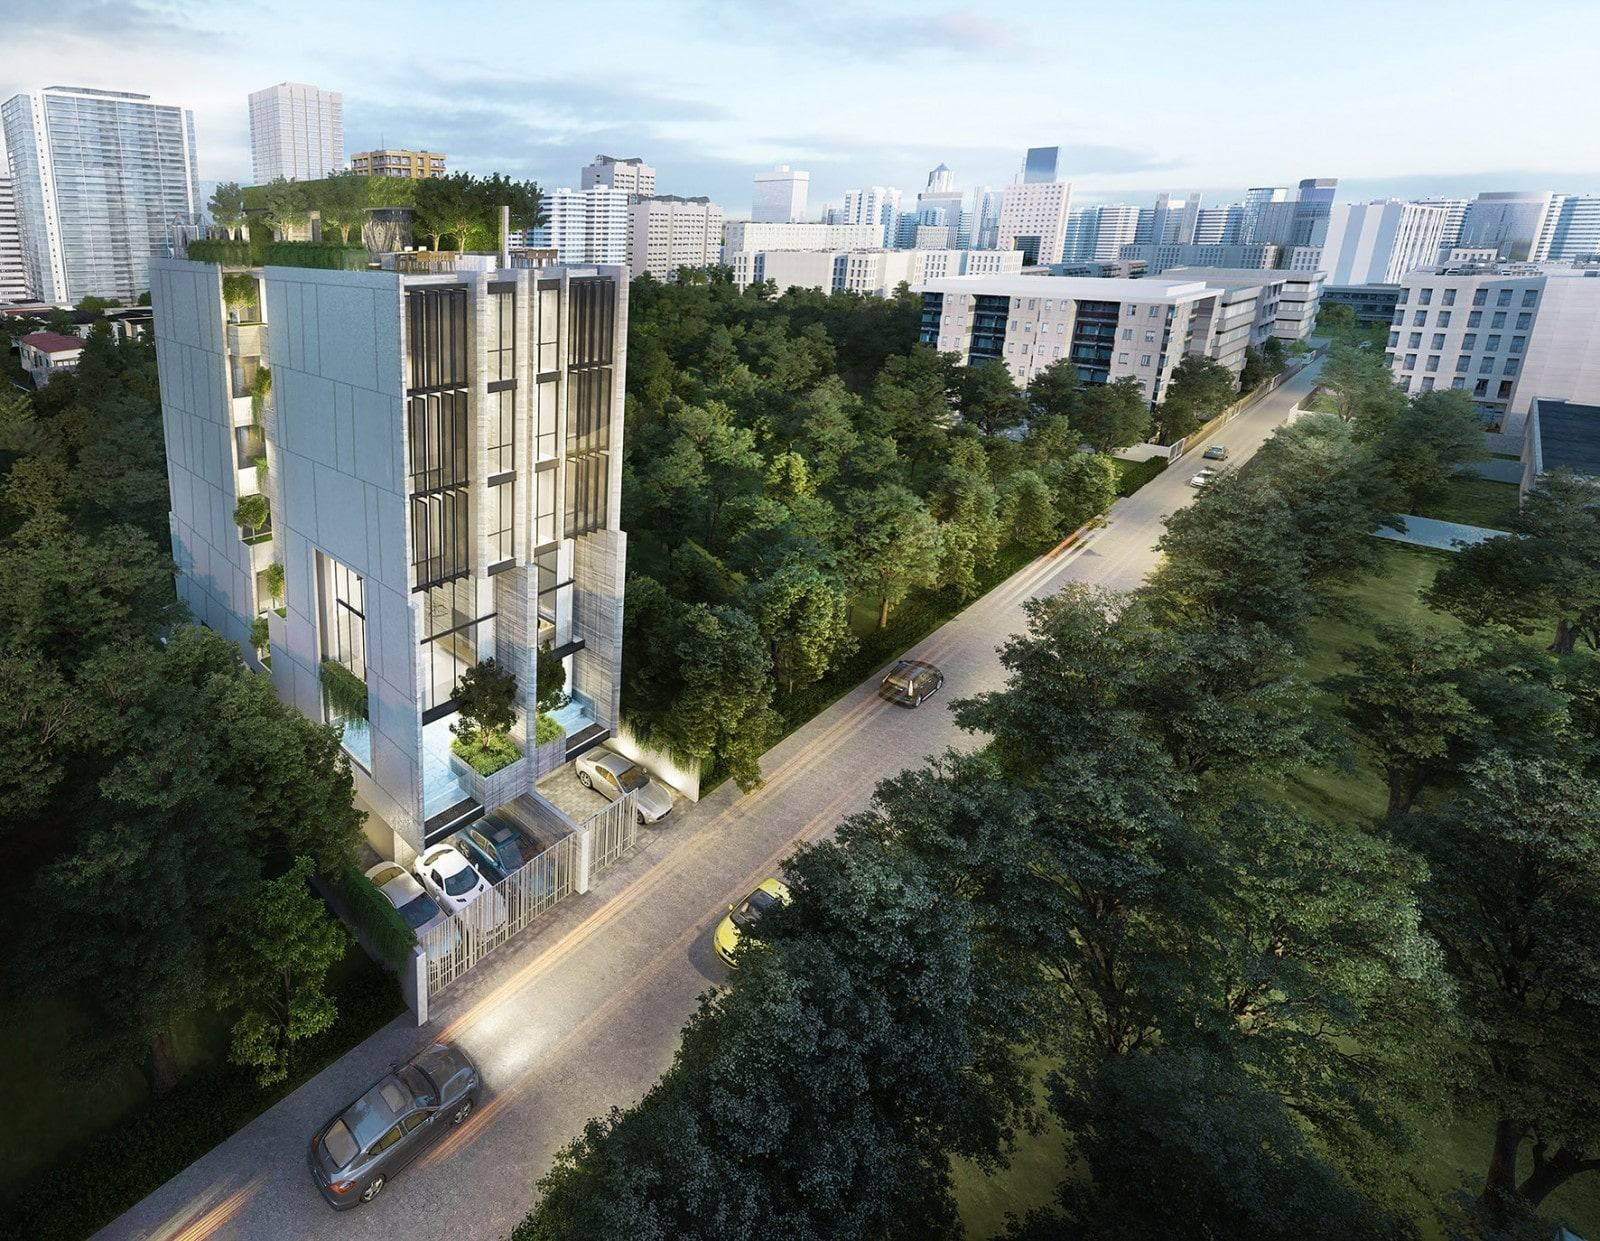 Habitat Group launches three projects valued at 3 billion baht | The Thaiger